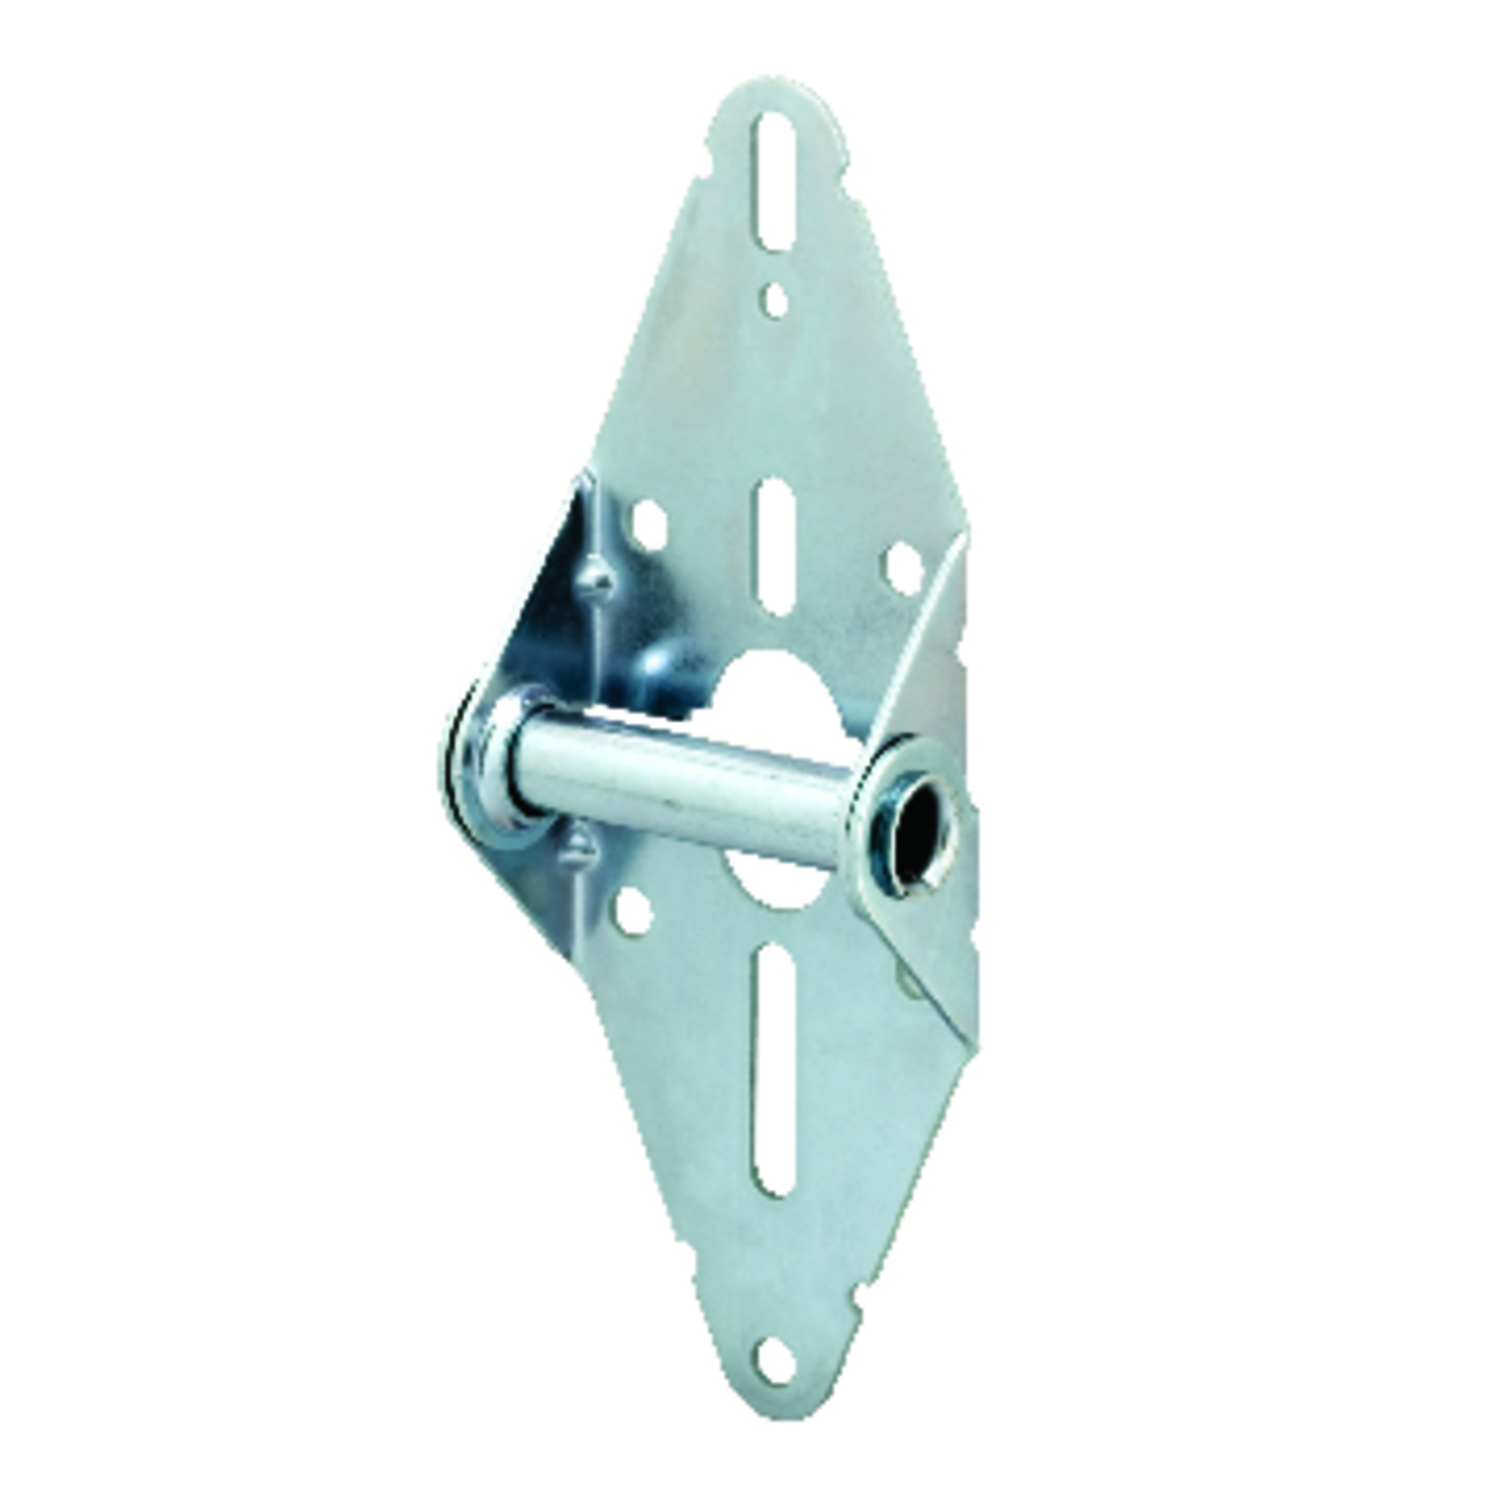 16 X Steel-Line Garage Door Hinges